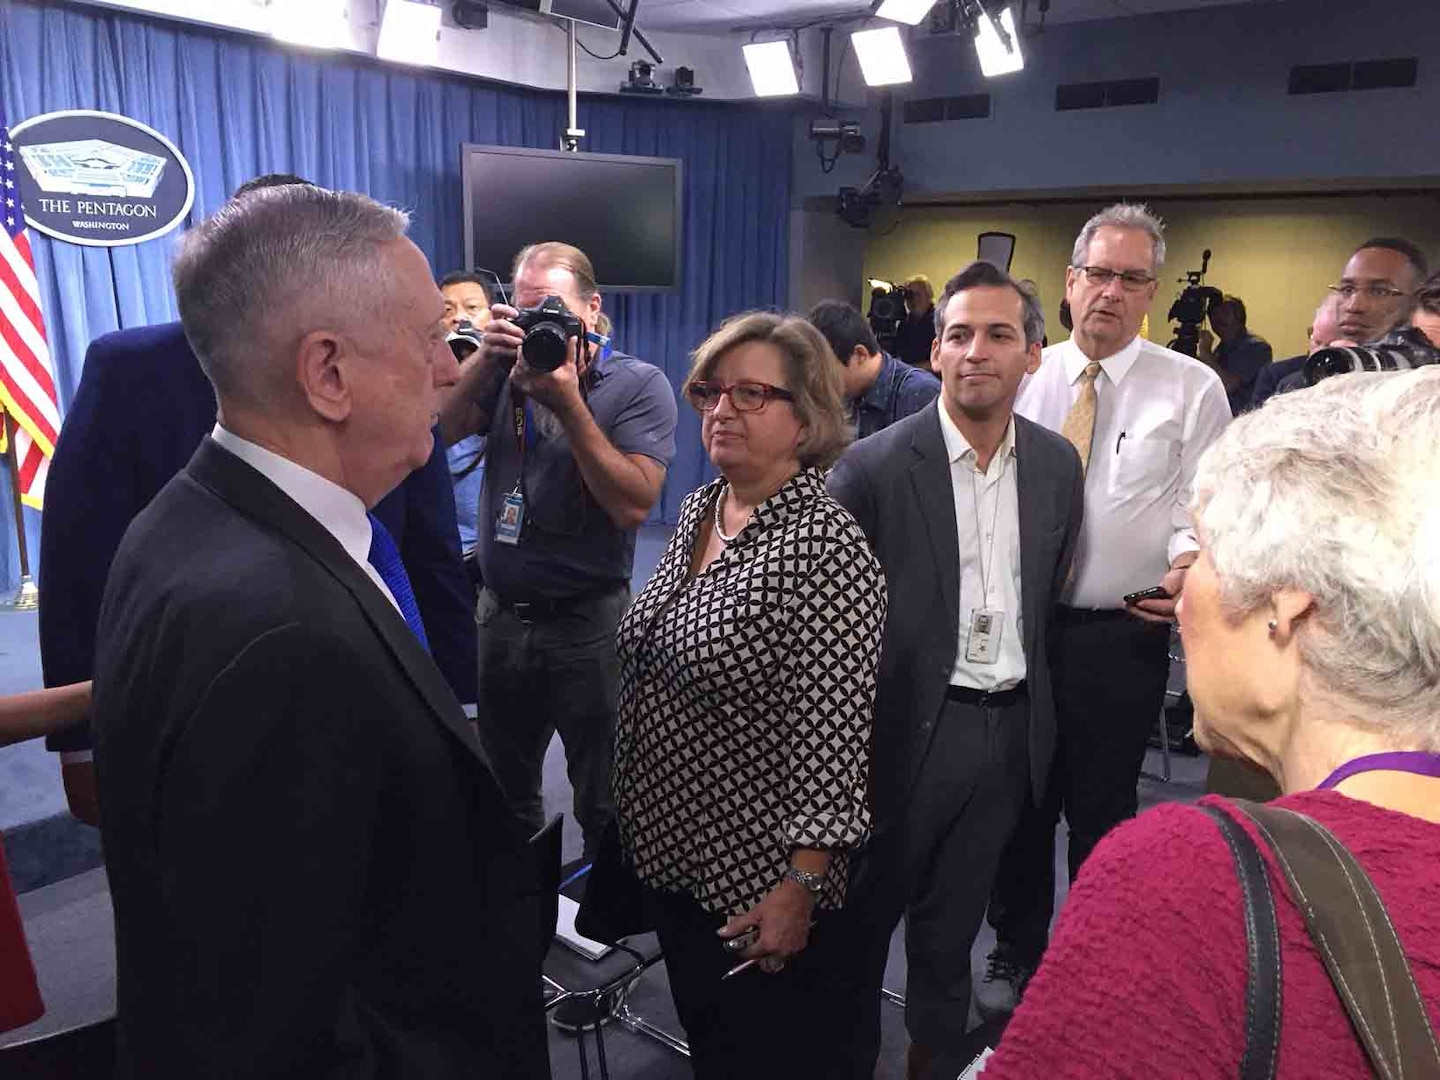 Defense Secretary greets reporters before news conference.